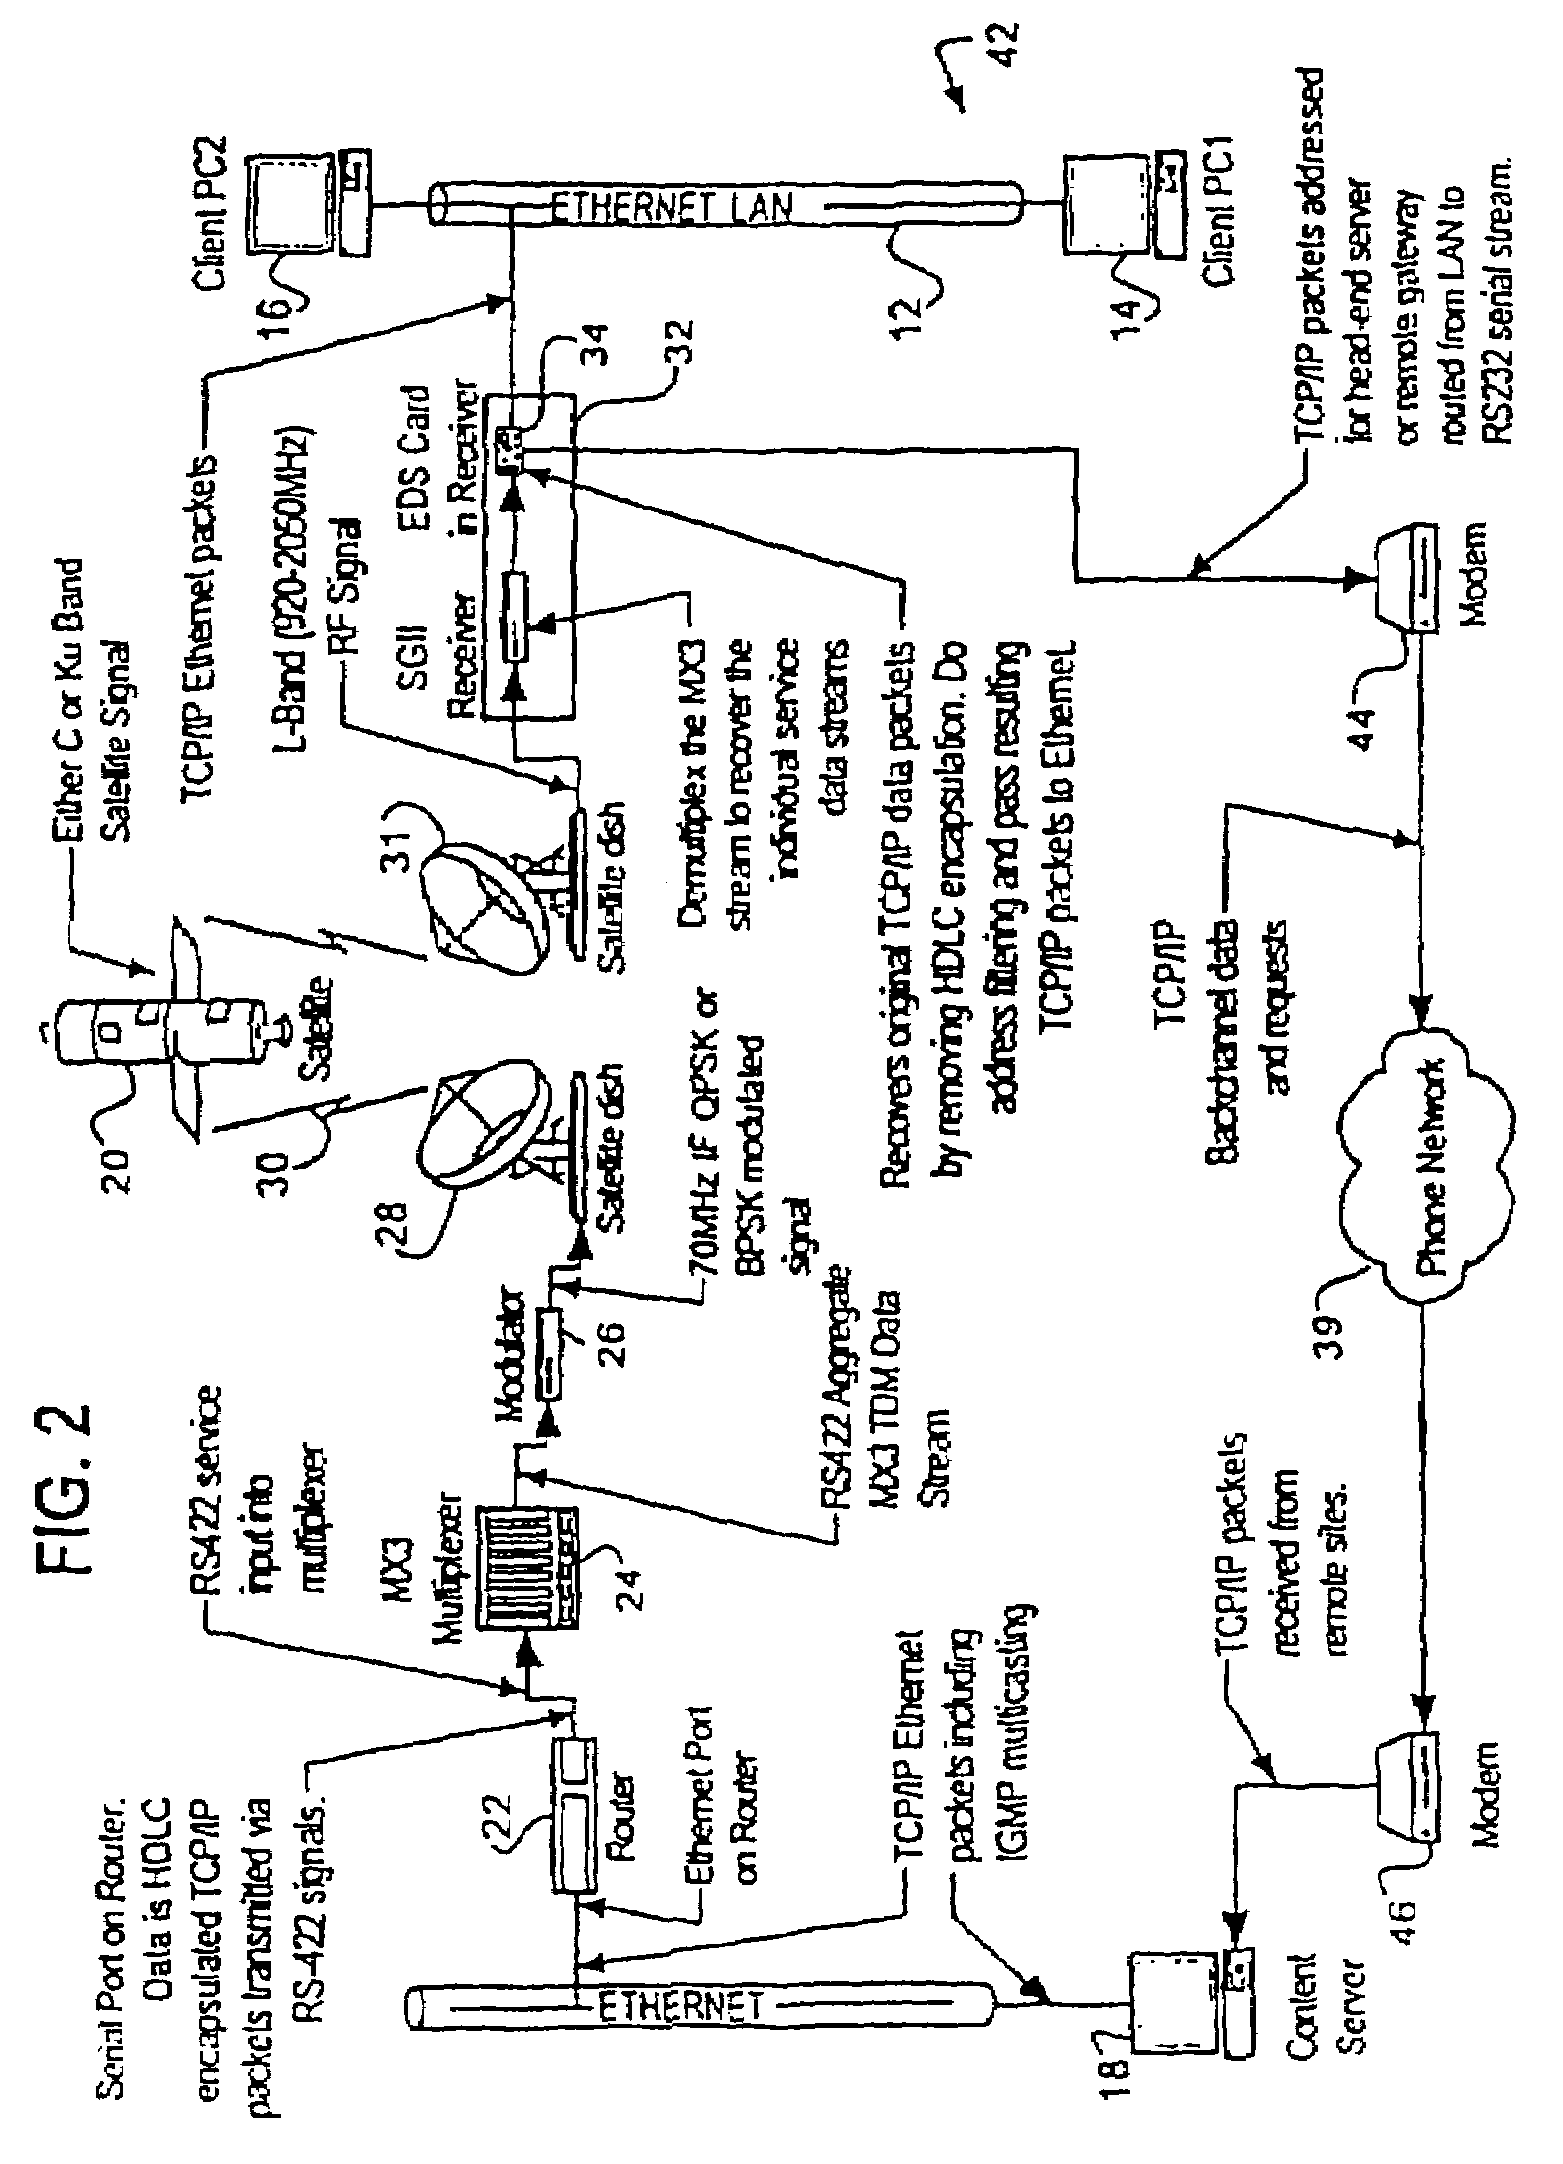 Patent Us7792068 Satellite Receiver Router System And Method Of Wiring Diagram For Smc Modem Drawing